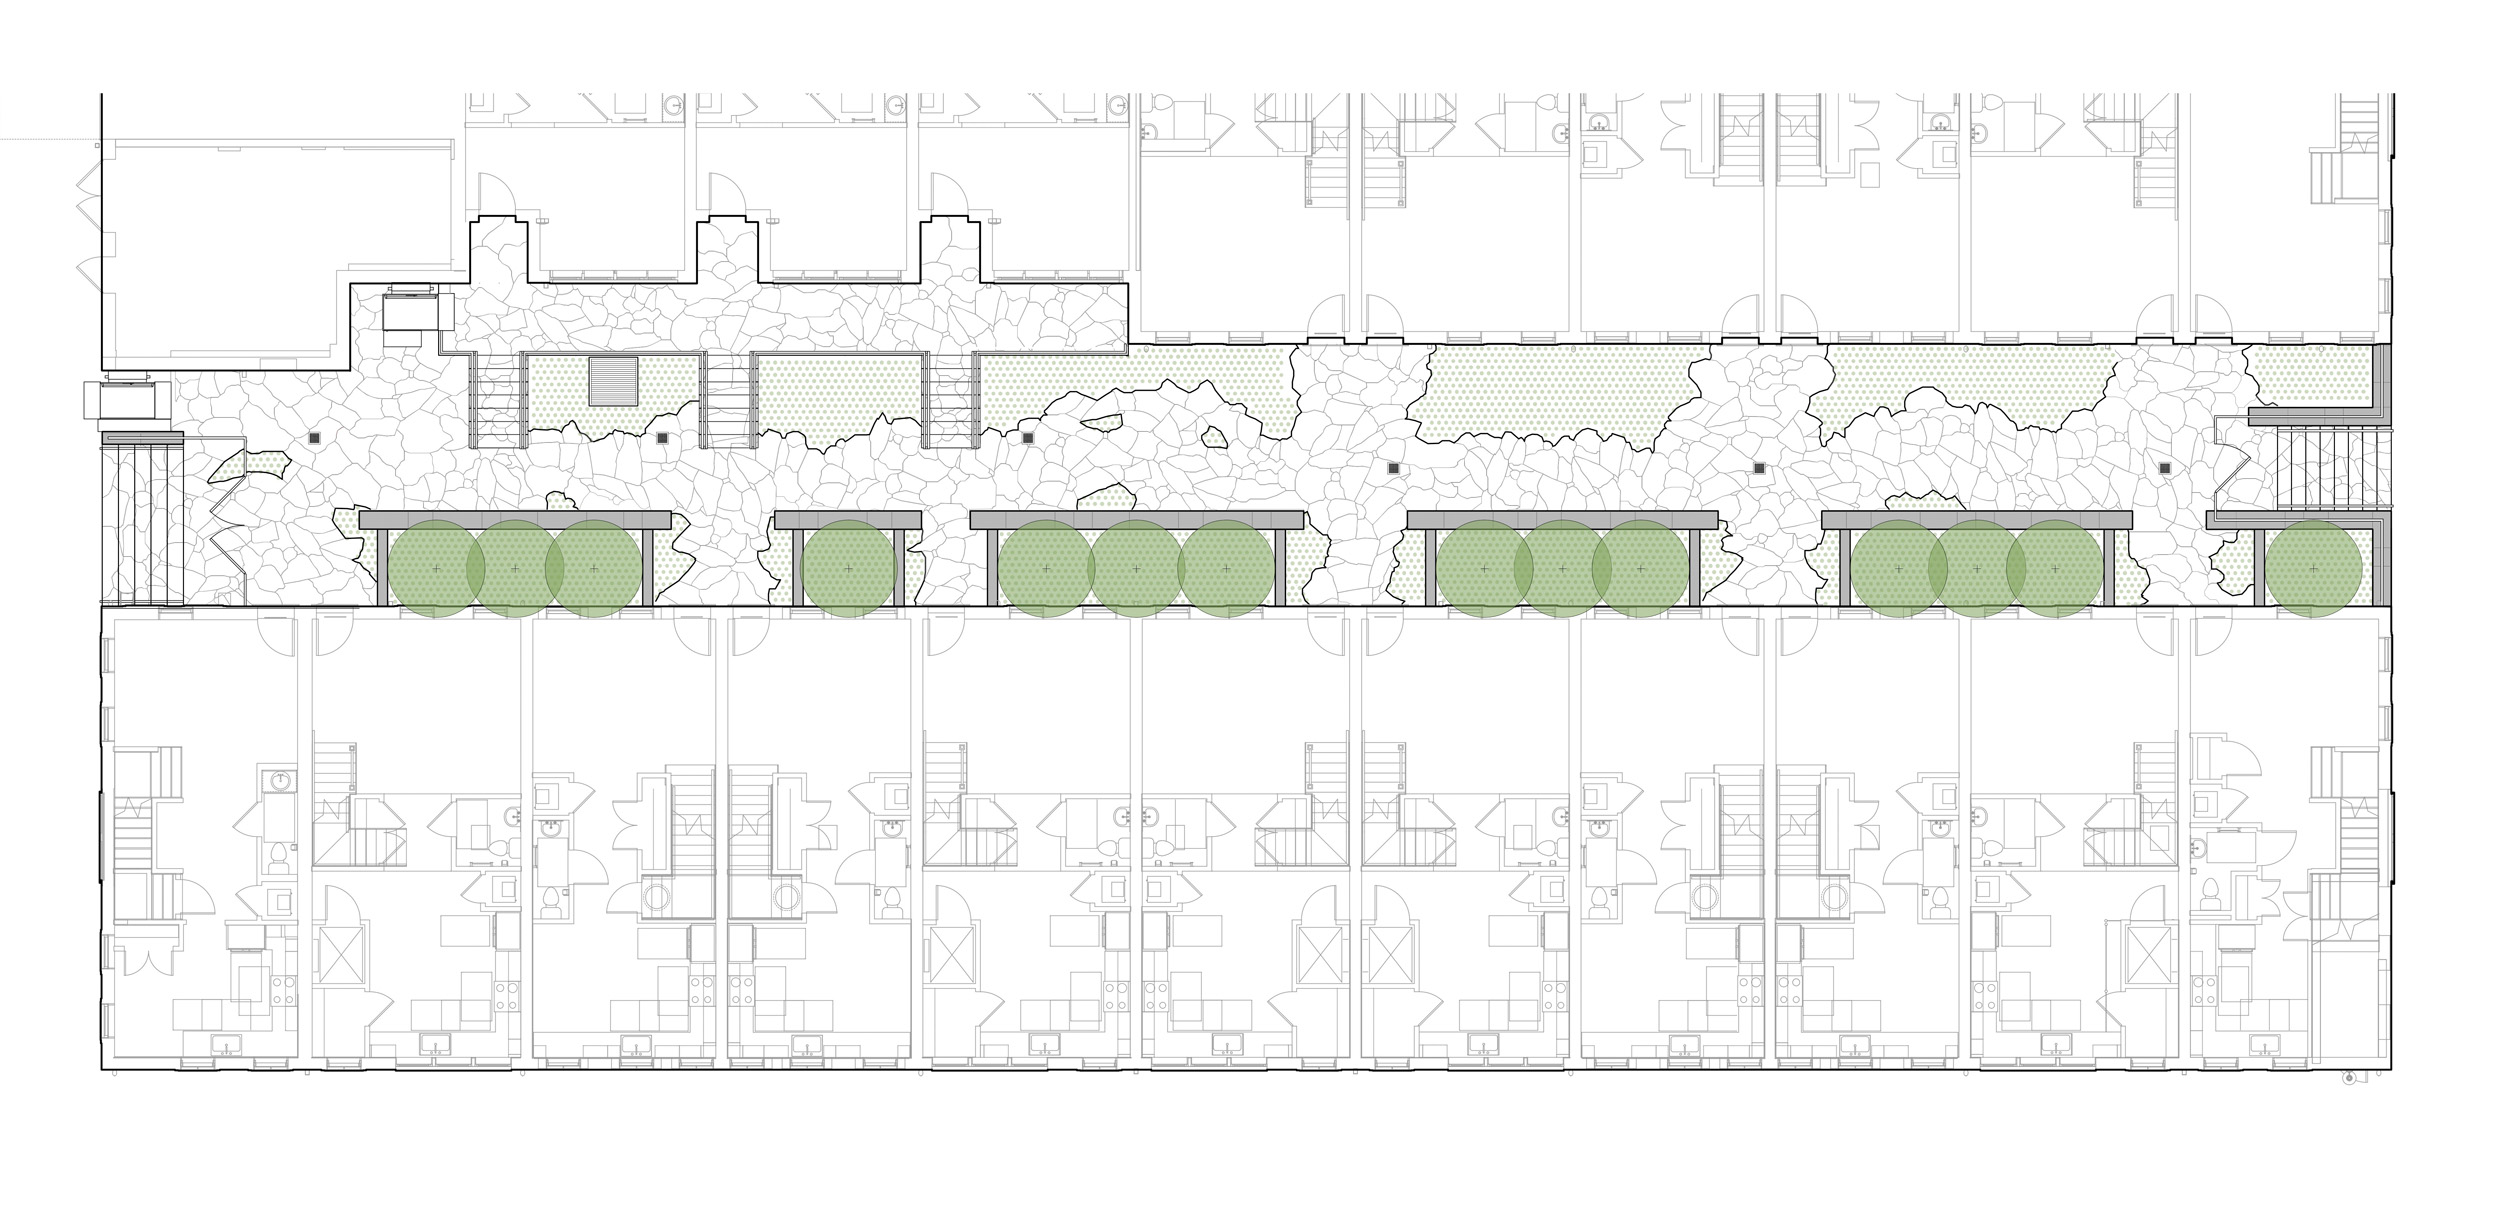 LOCH COLLECTIVE_LANDSCAPE ARCHITECTURE__WATKINS ALLEY DITTO RESIDENTIAL_09.jpg